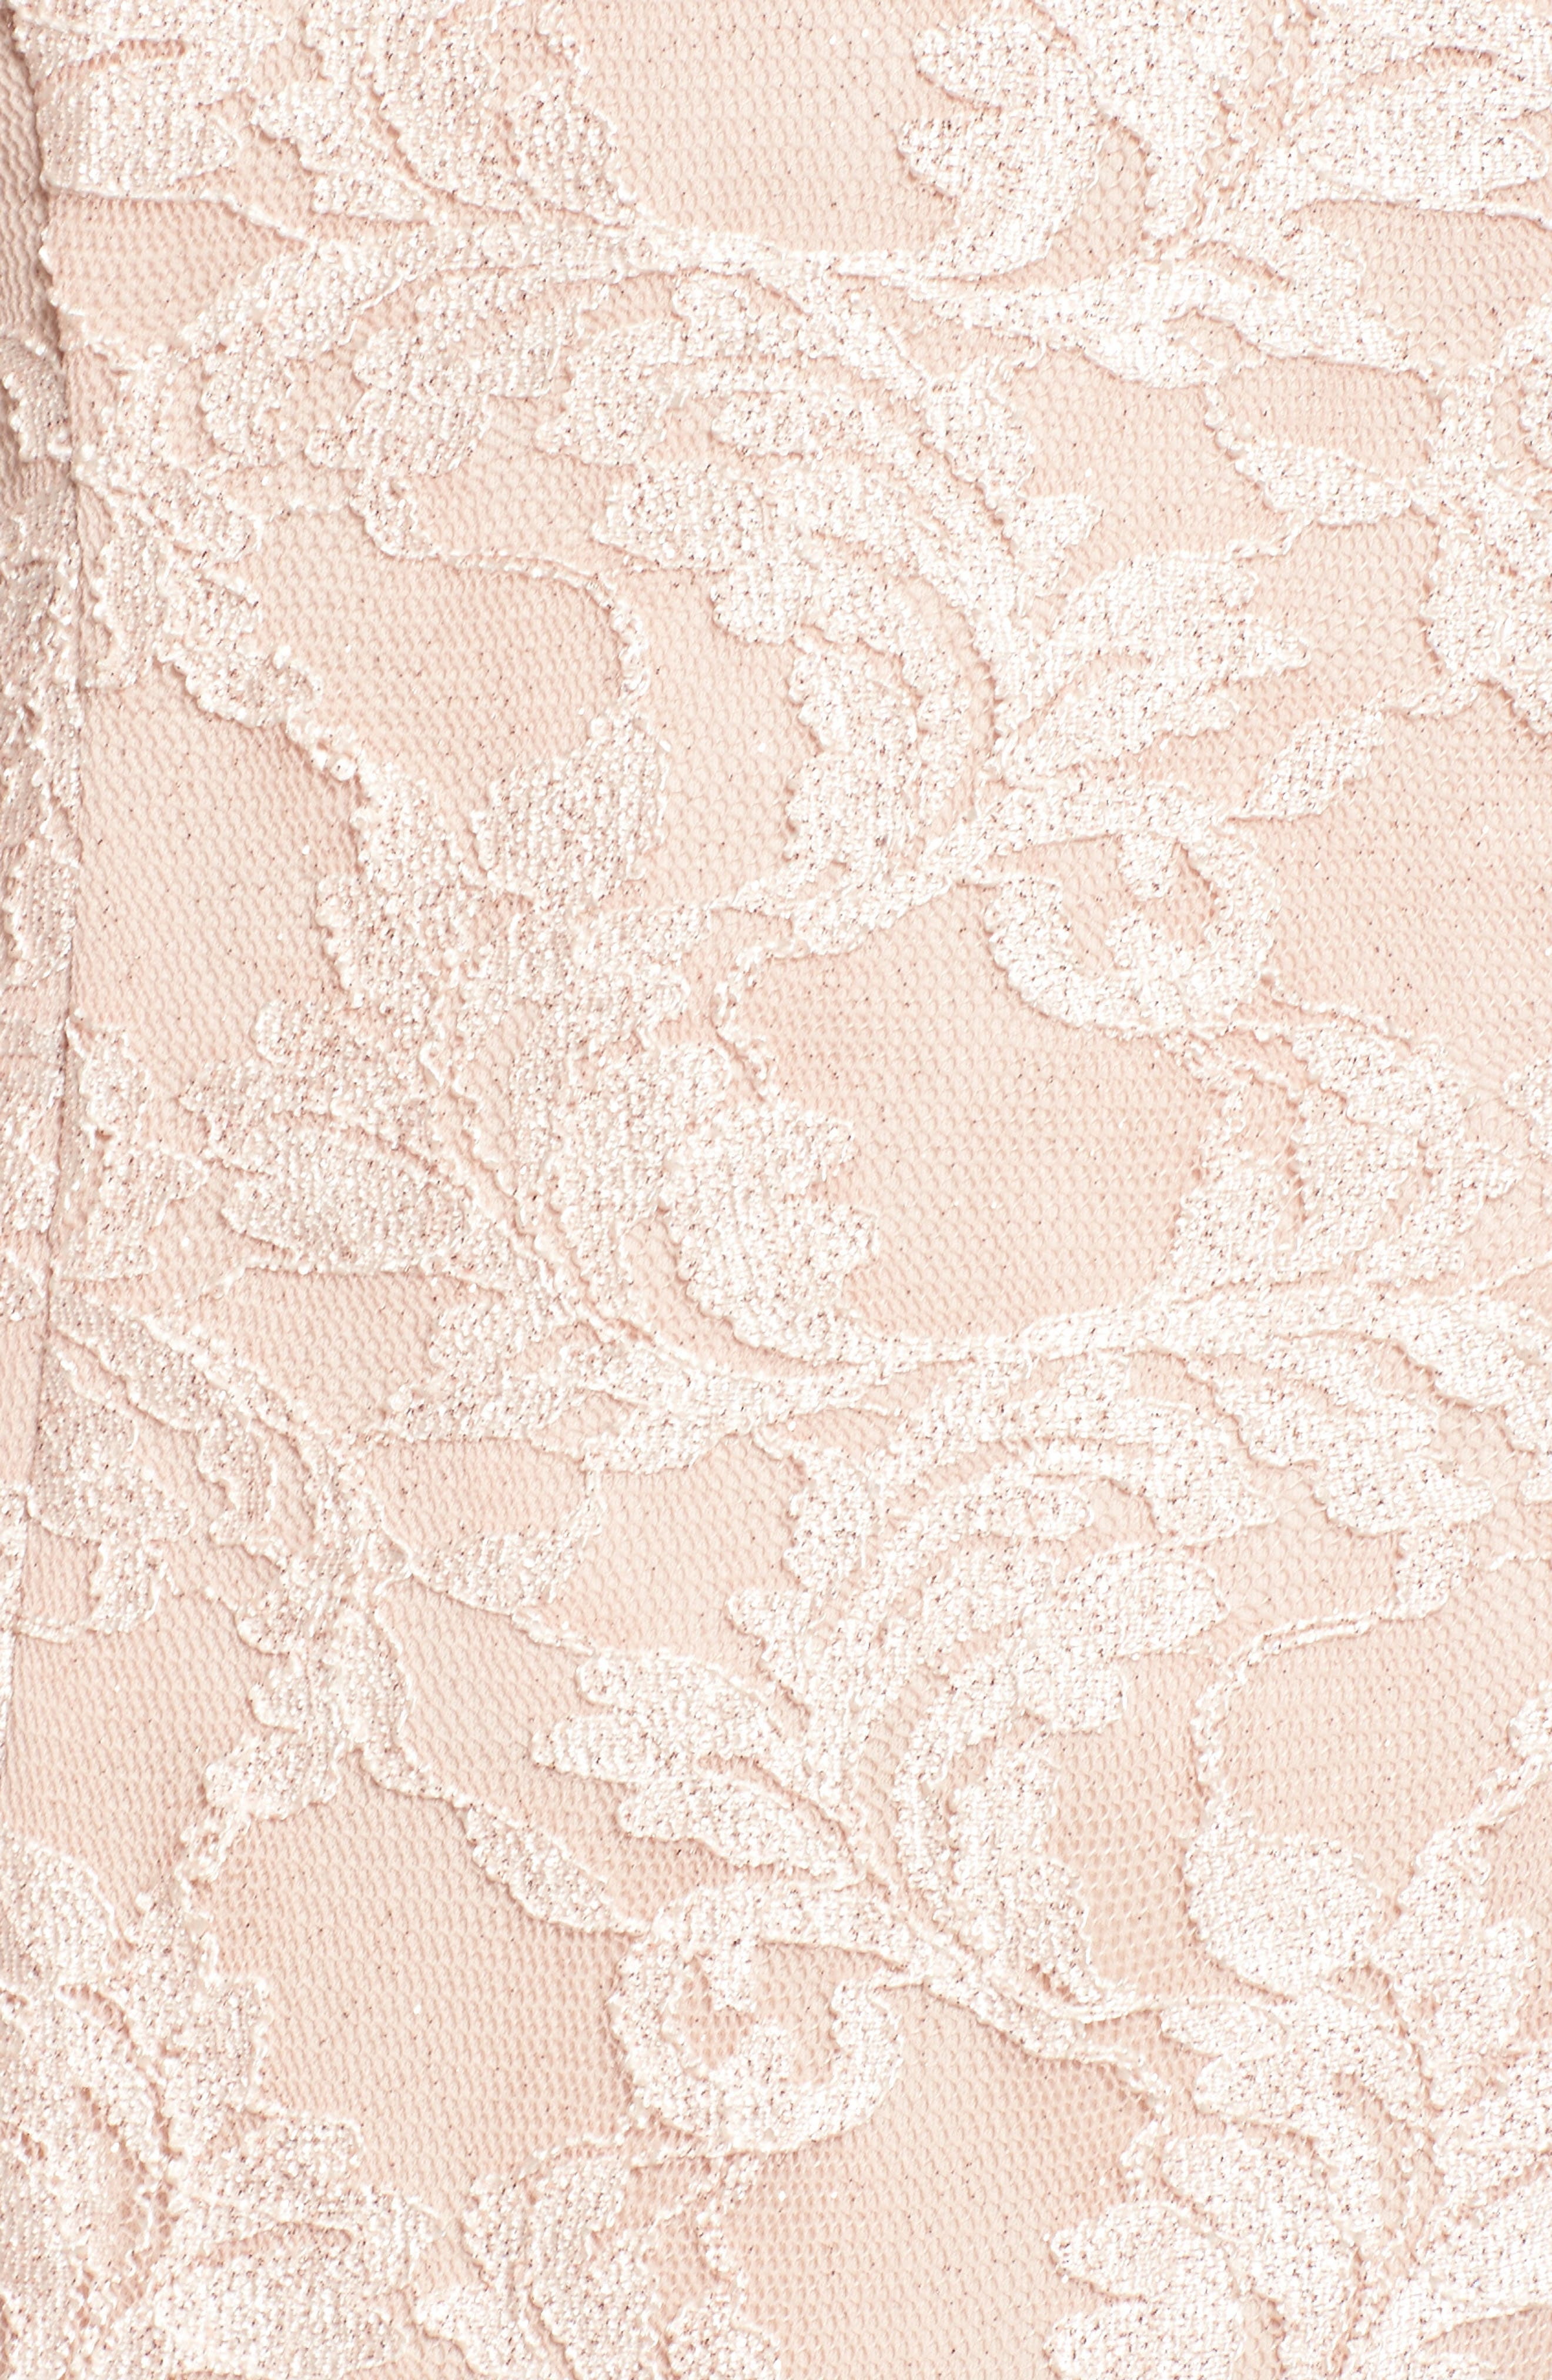 Strappy Lace Mermaid Gown,                             Alternate thumbnail 5, color,                             Blush / Nude